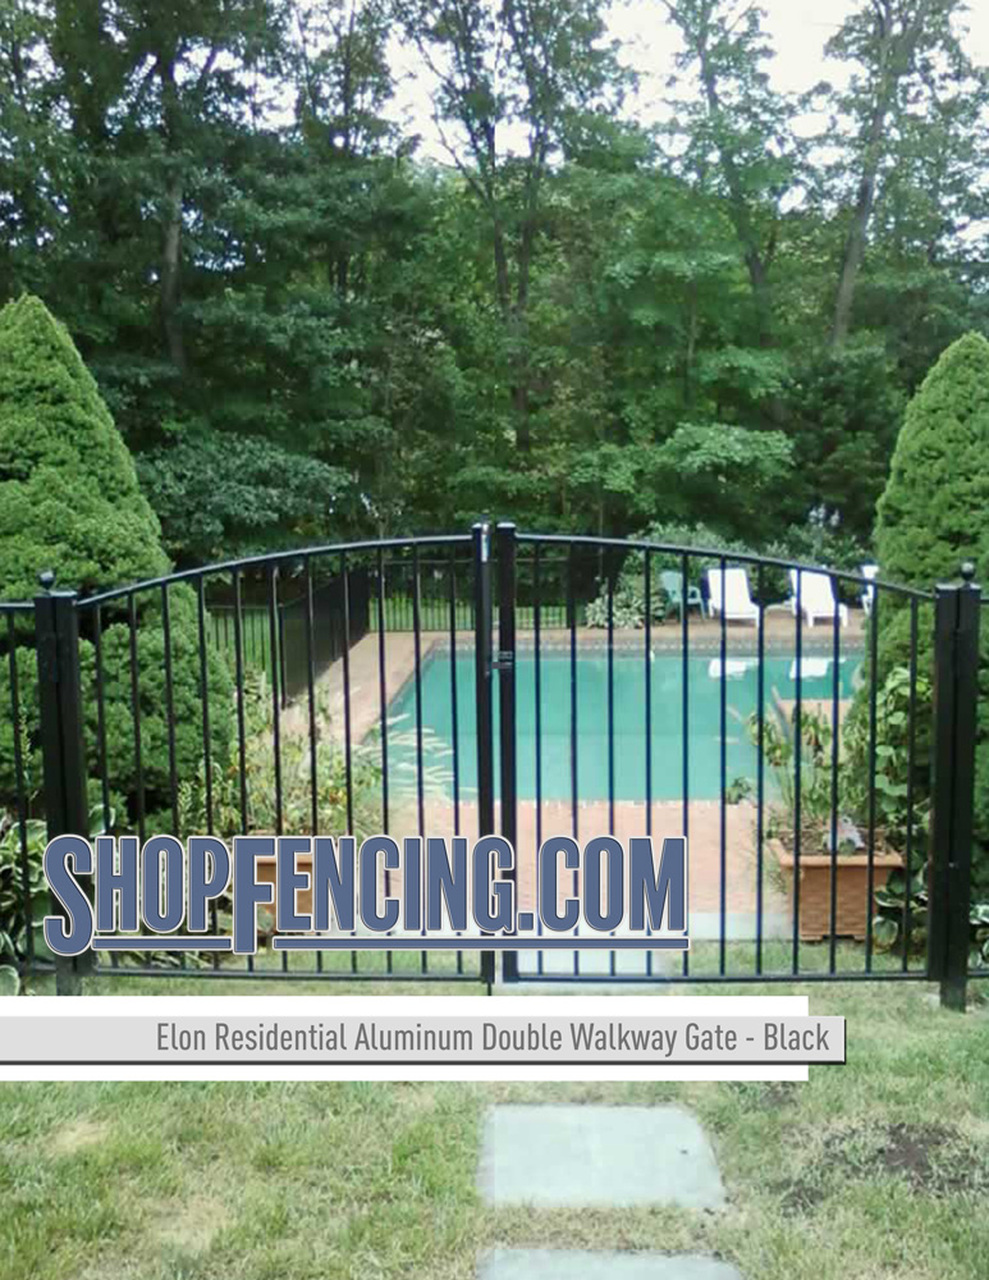 Residential Elon Aluminum Double Walkway Gate - Rainbow Arch From ShopFencing.com